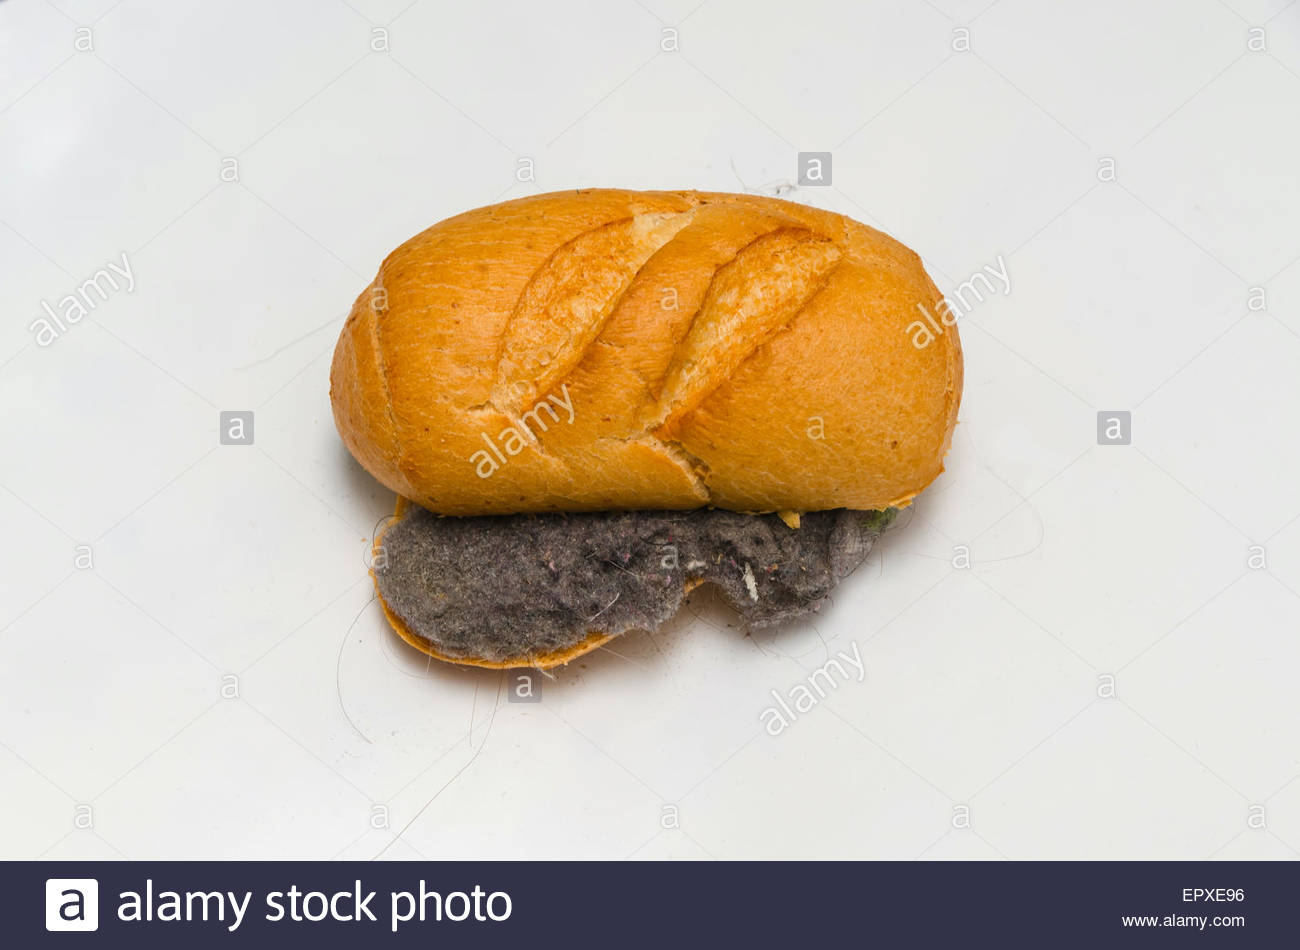 Unhygienic dust and har sandwich. Disgusting food - Stock Image